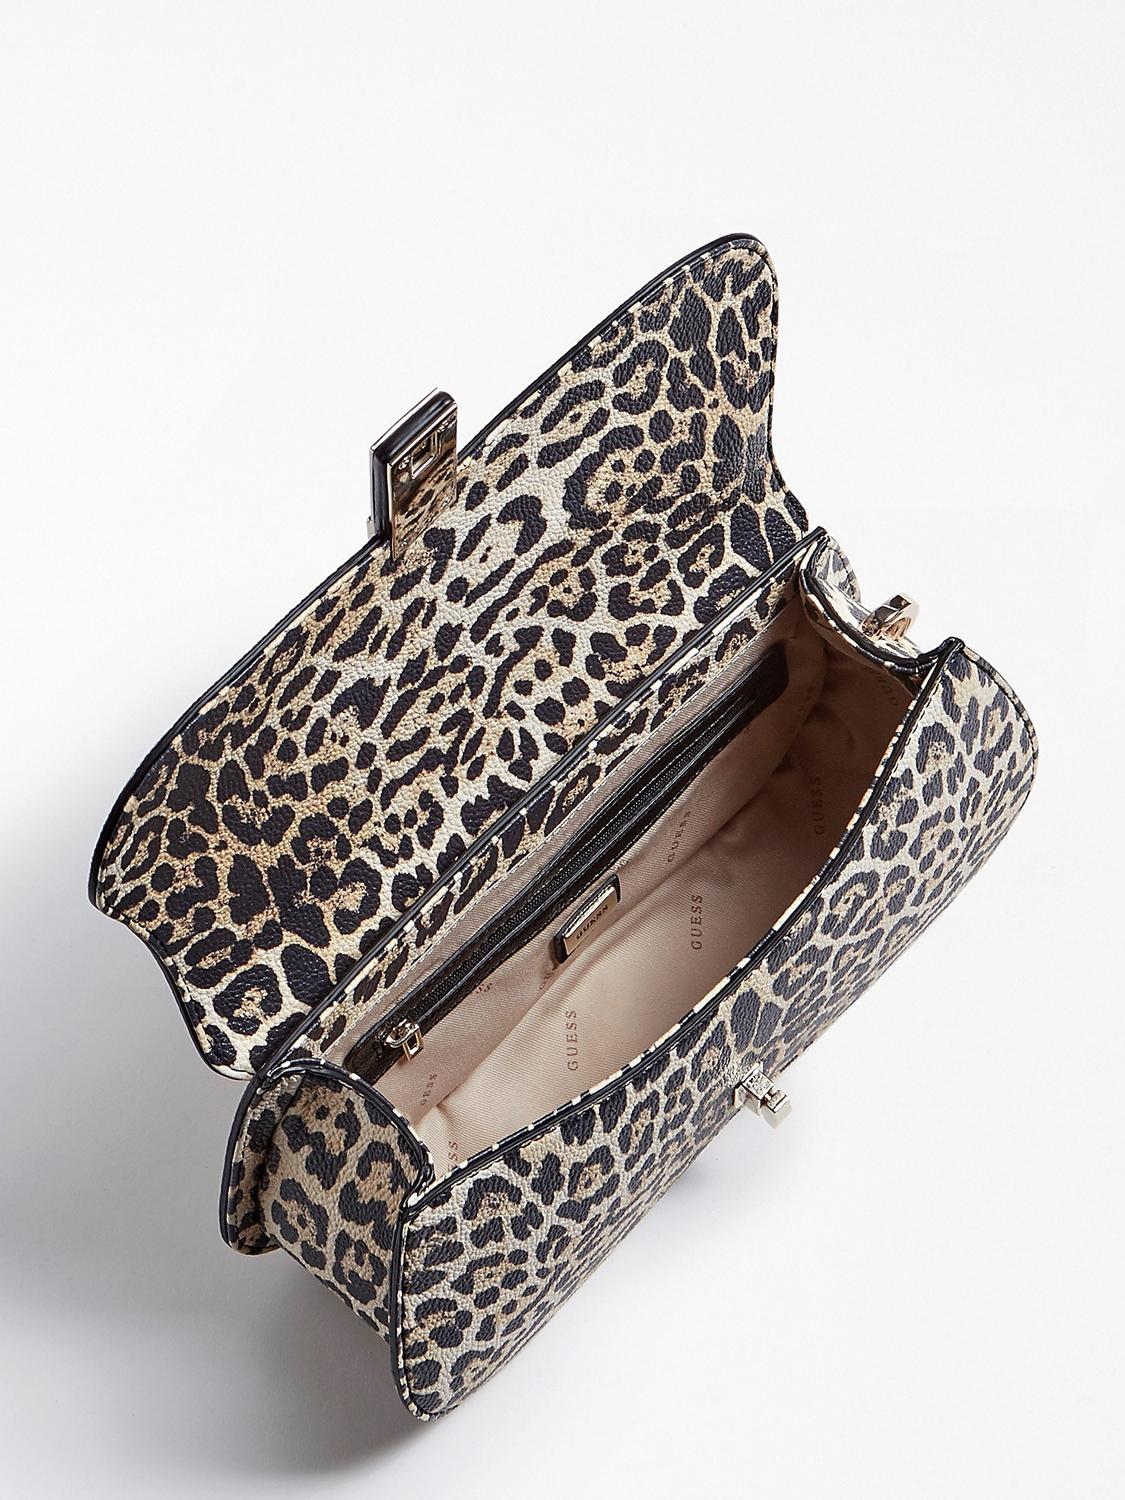 GUESS BEAUTY CASE LEOPARD